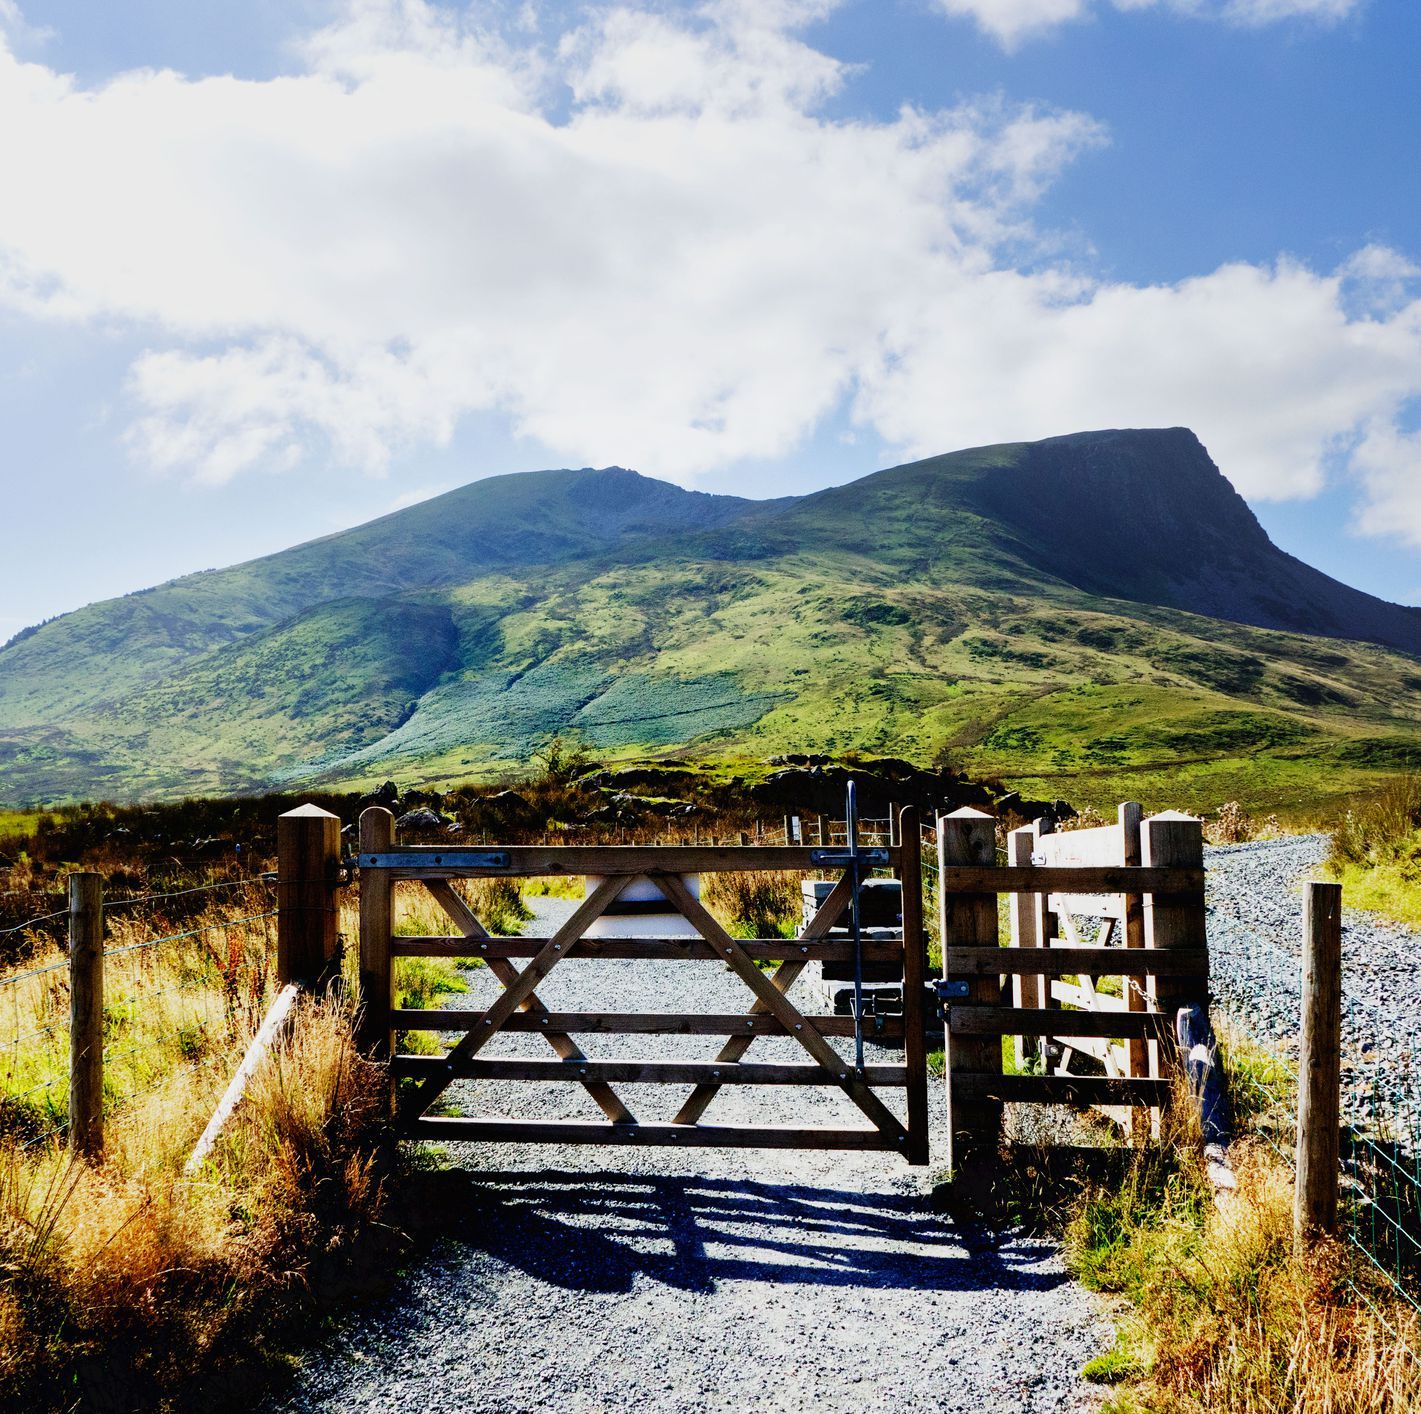 These are the 20 most popular hiking routes in Britain, according to the Ordnance Survey